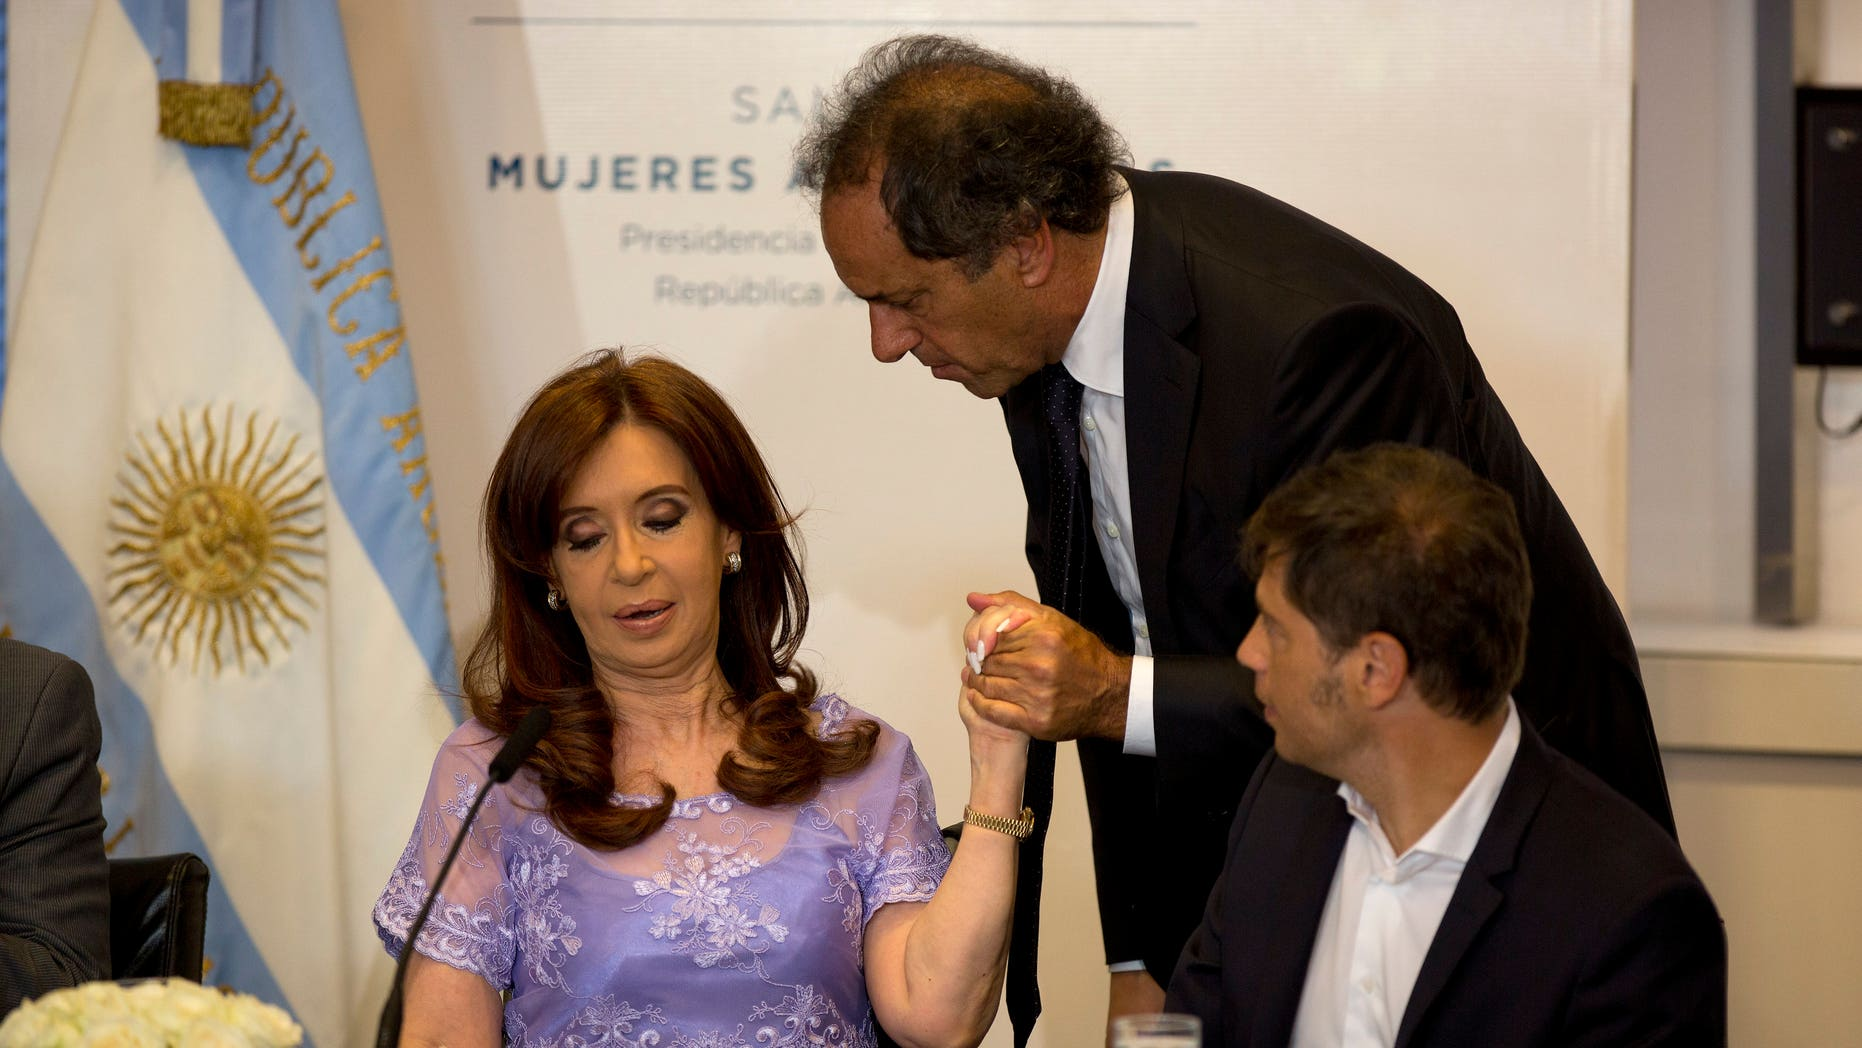 President Cristina Fernandez at the government palace, in Buenos Aires, Friday, Jan. 30, 2015.